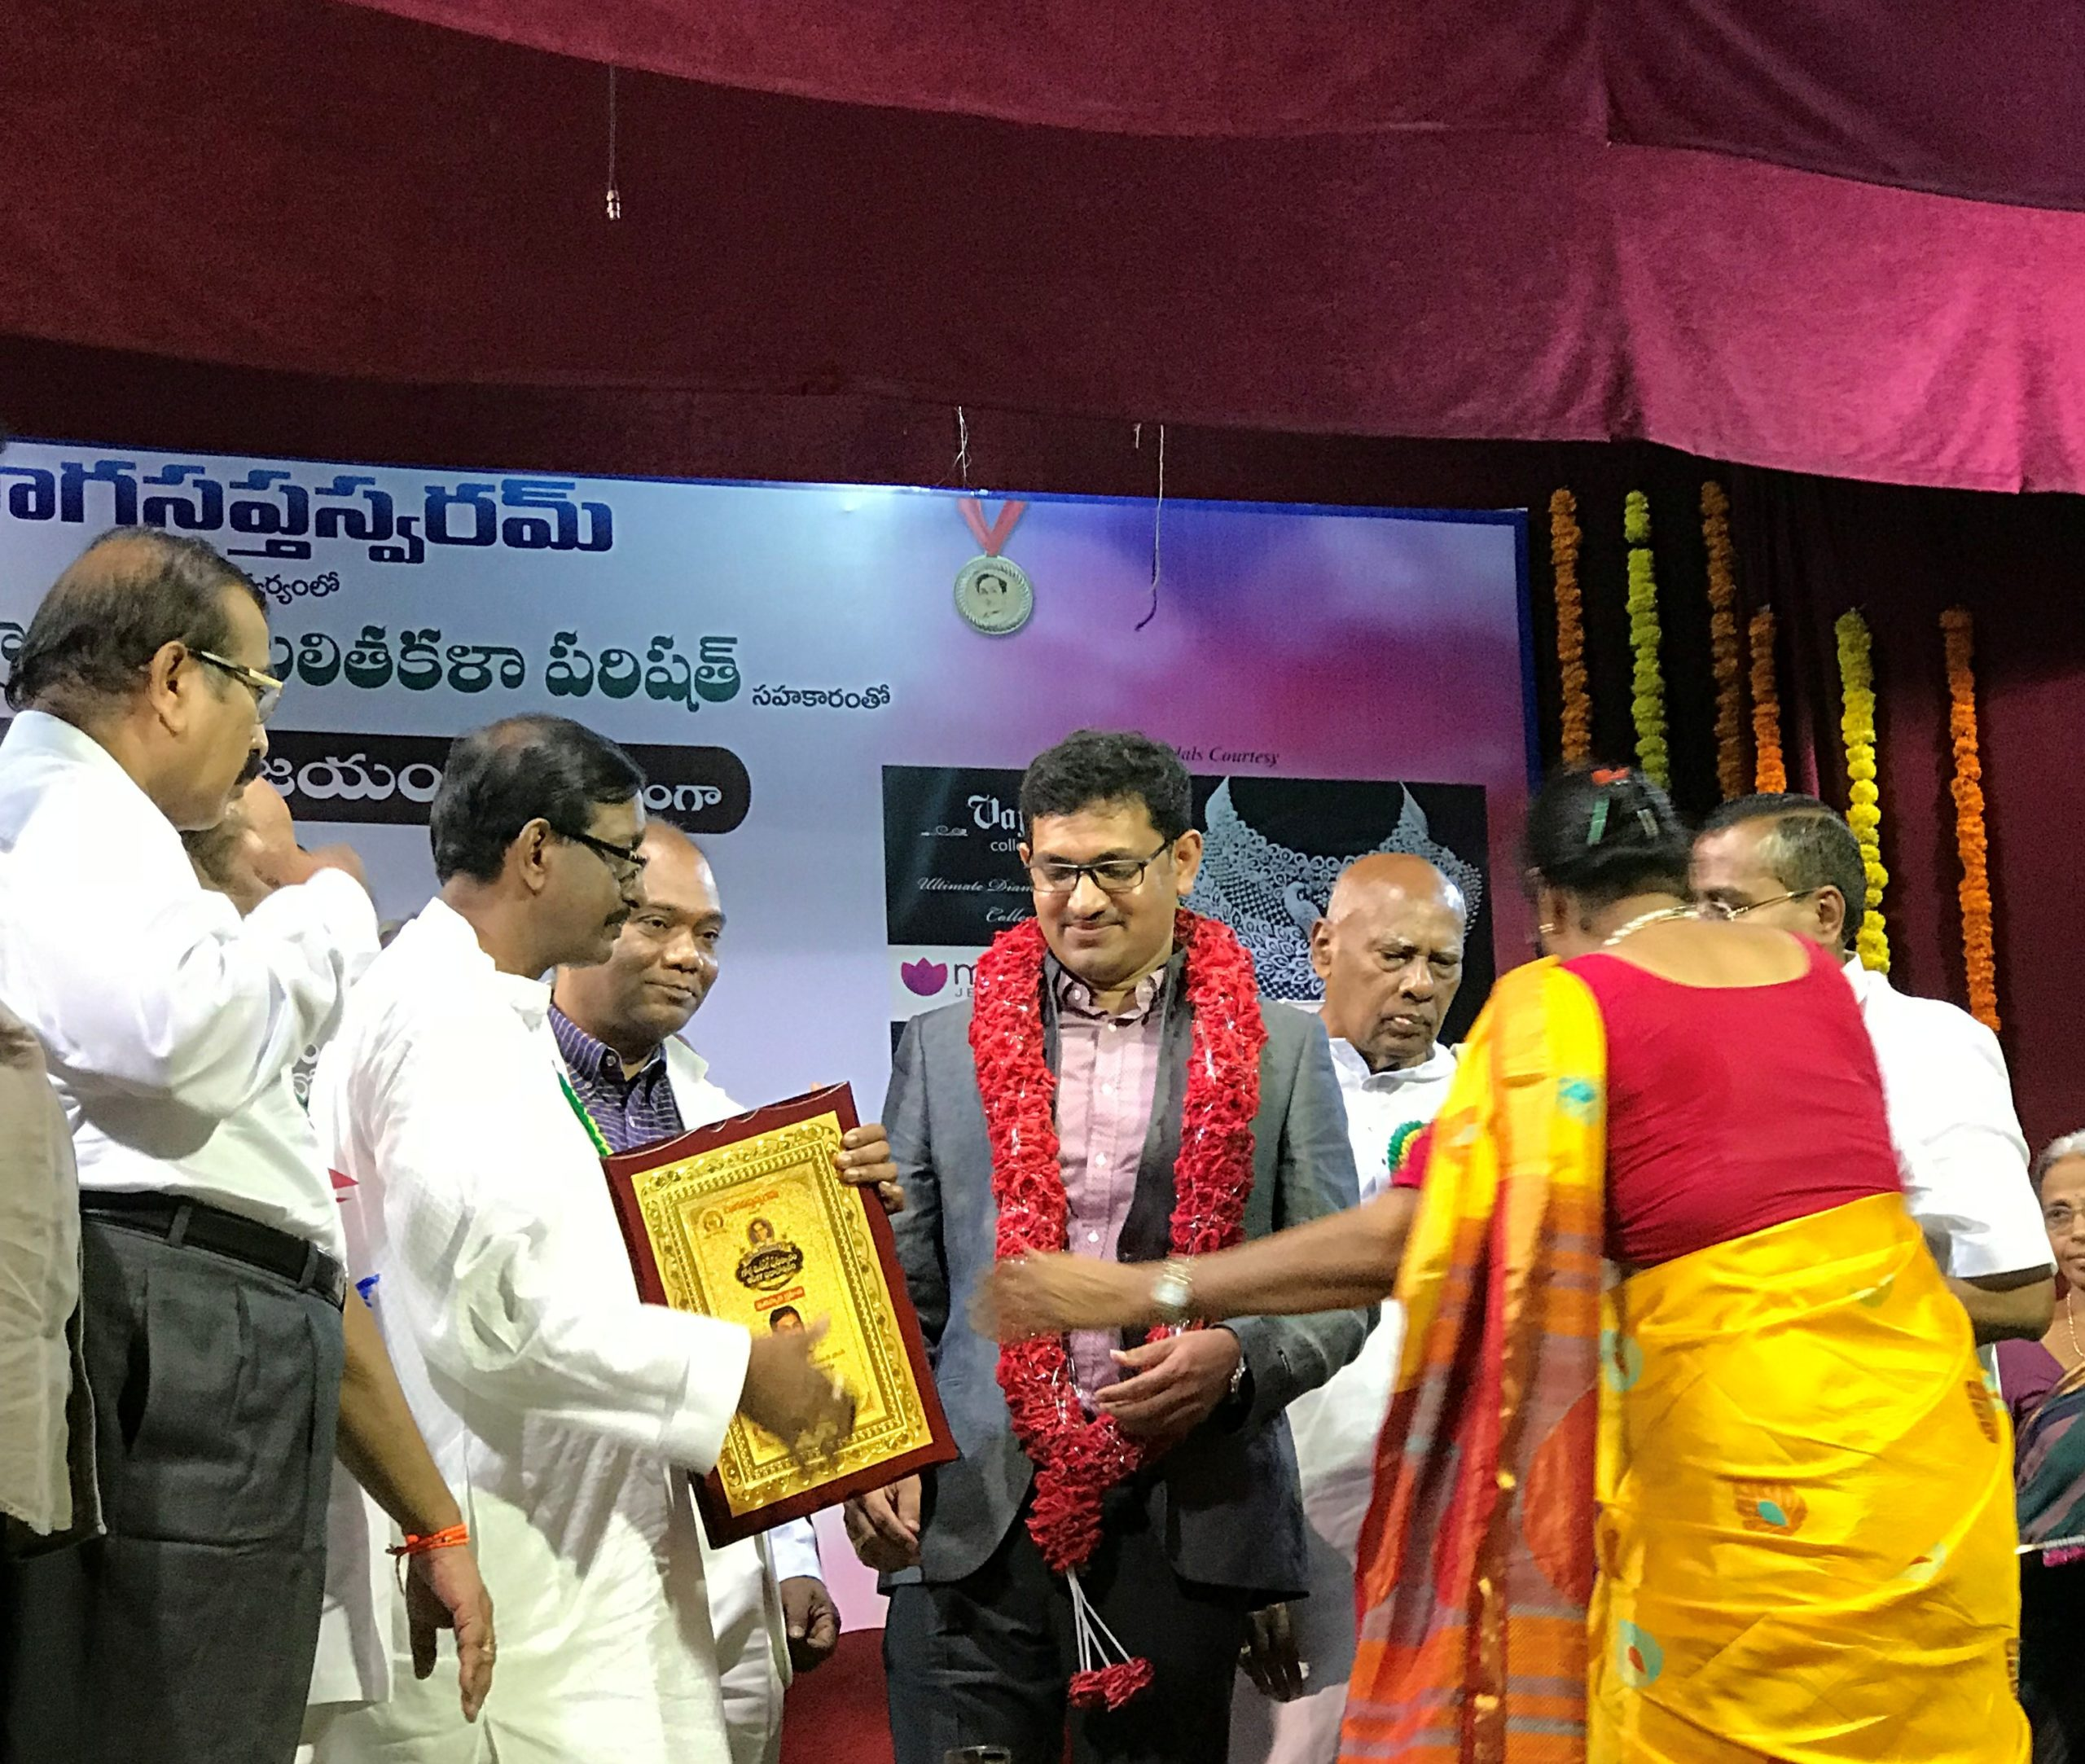 award received by Dr Chandrashekhar